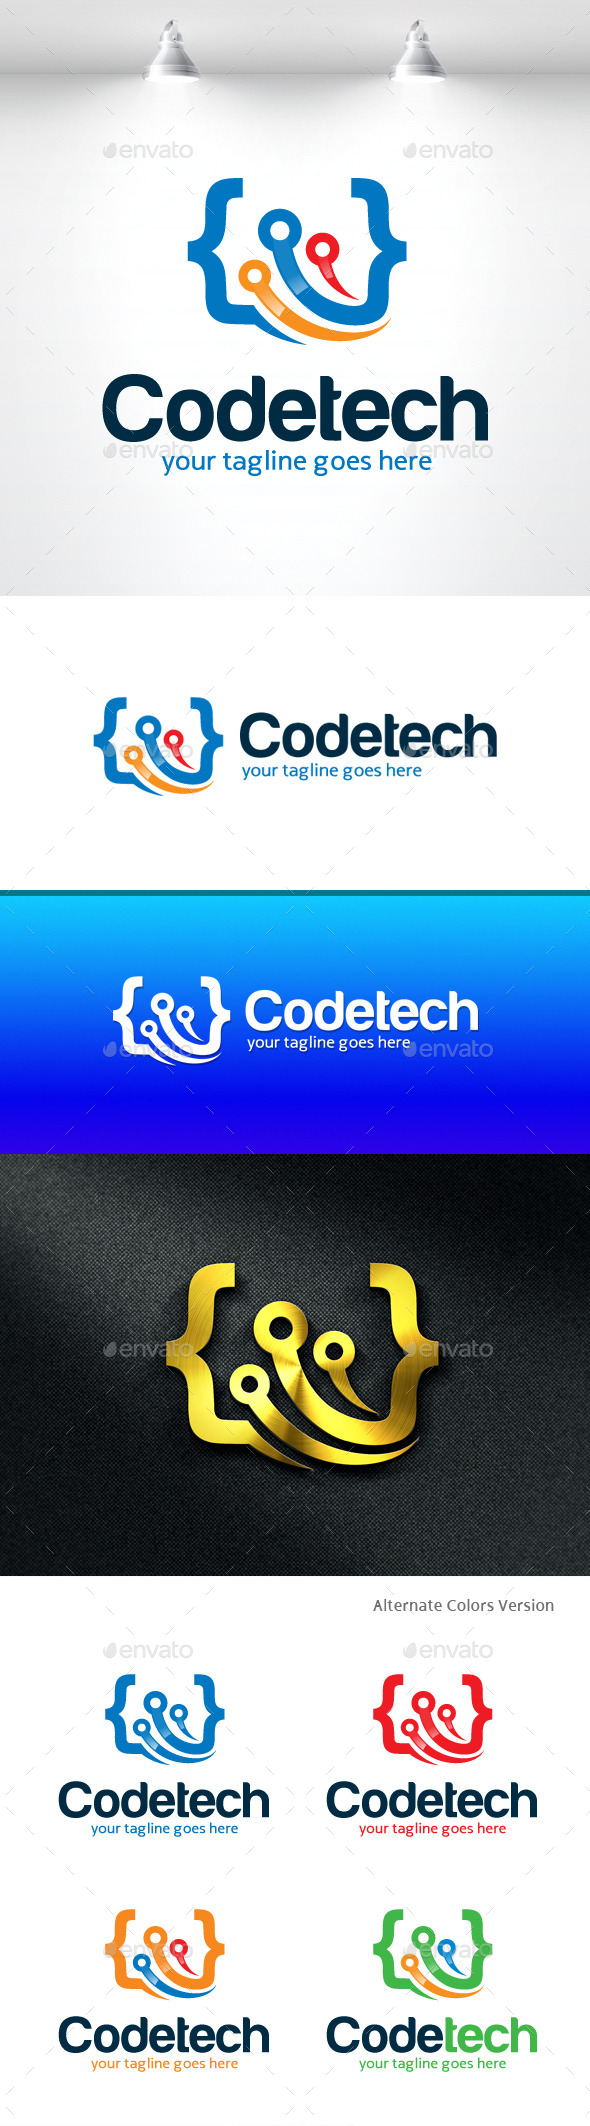 Well designed technology logos